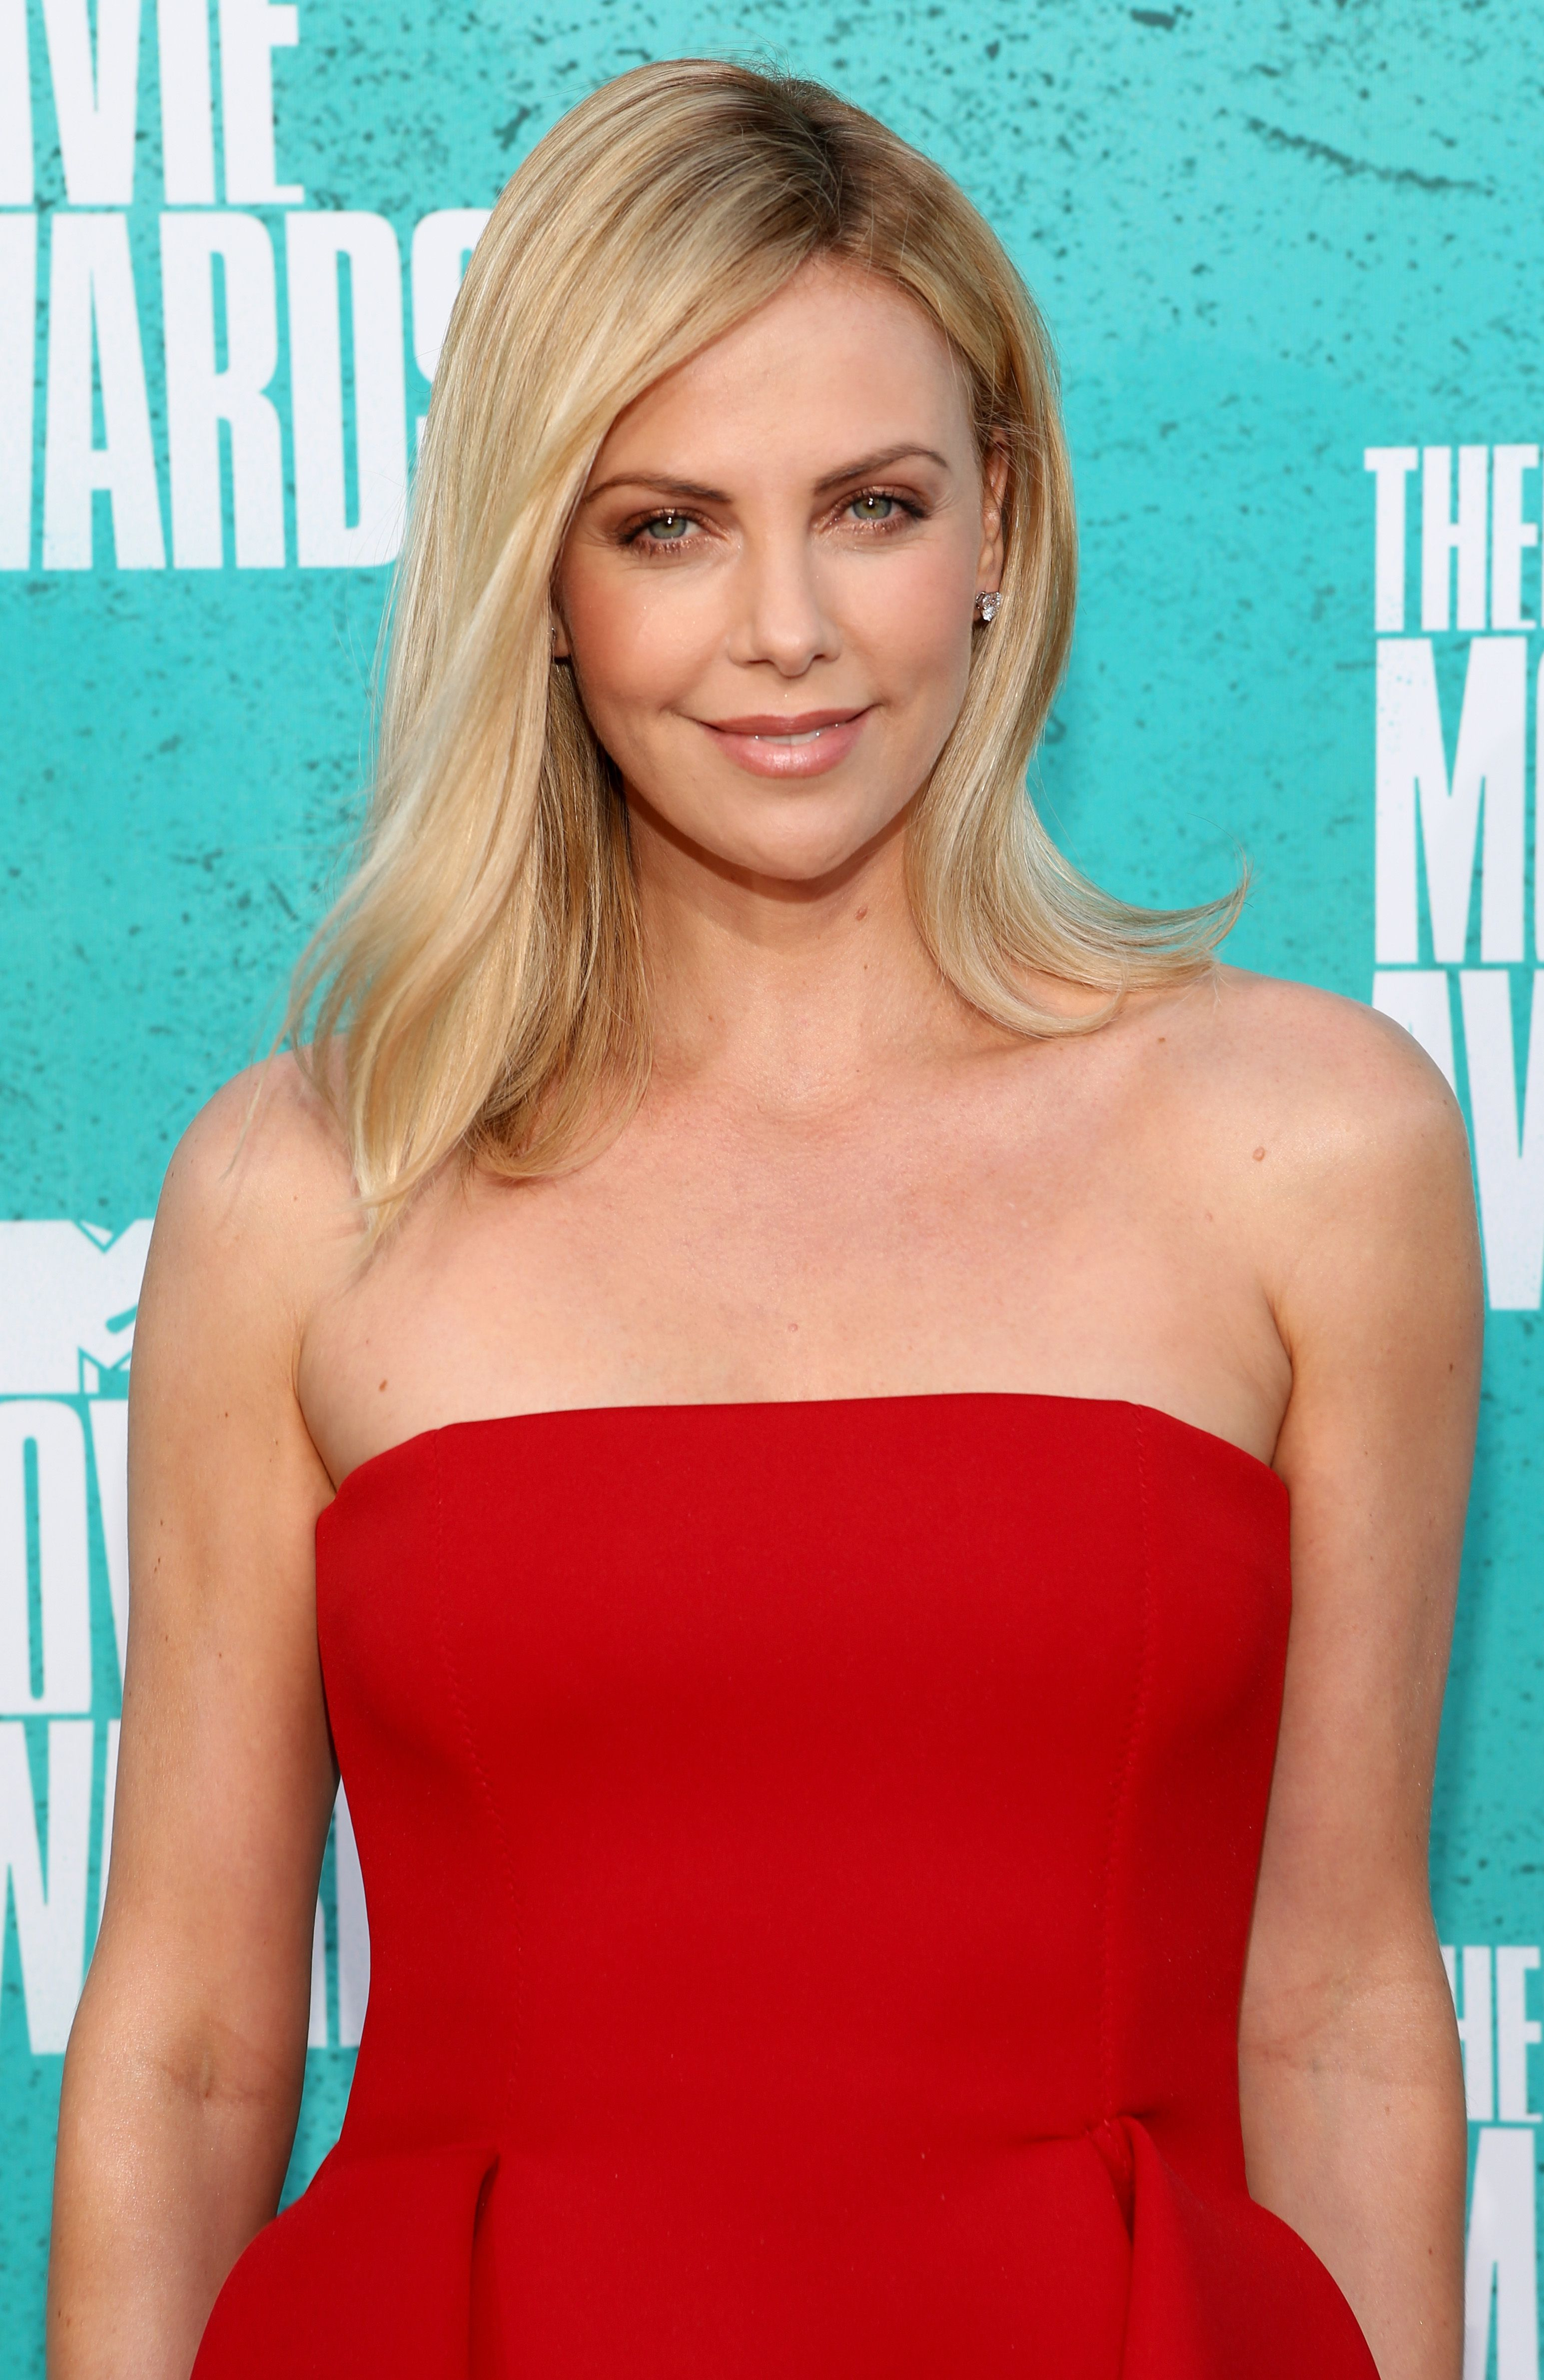 charlize theron red carpet - Google Search | Beauty | Pinterest ...